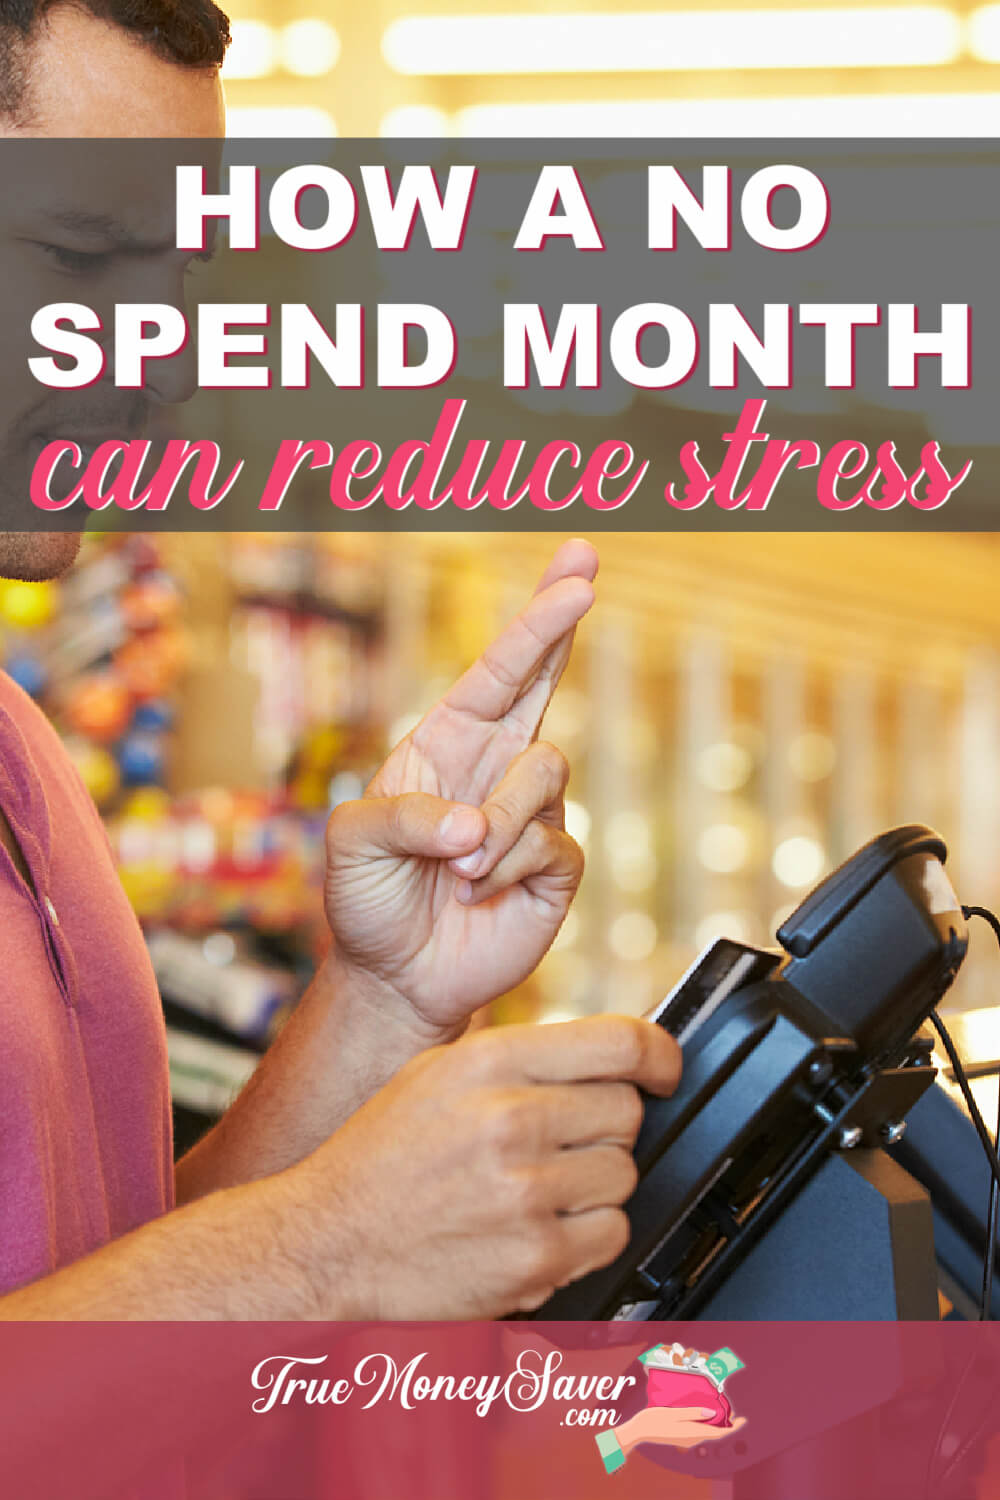 How No Spending Month Challenges Can Reduce Stress